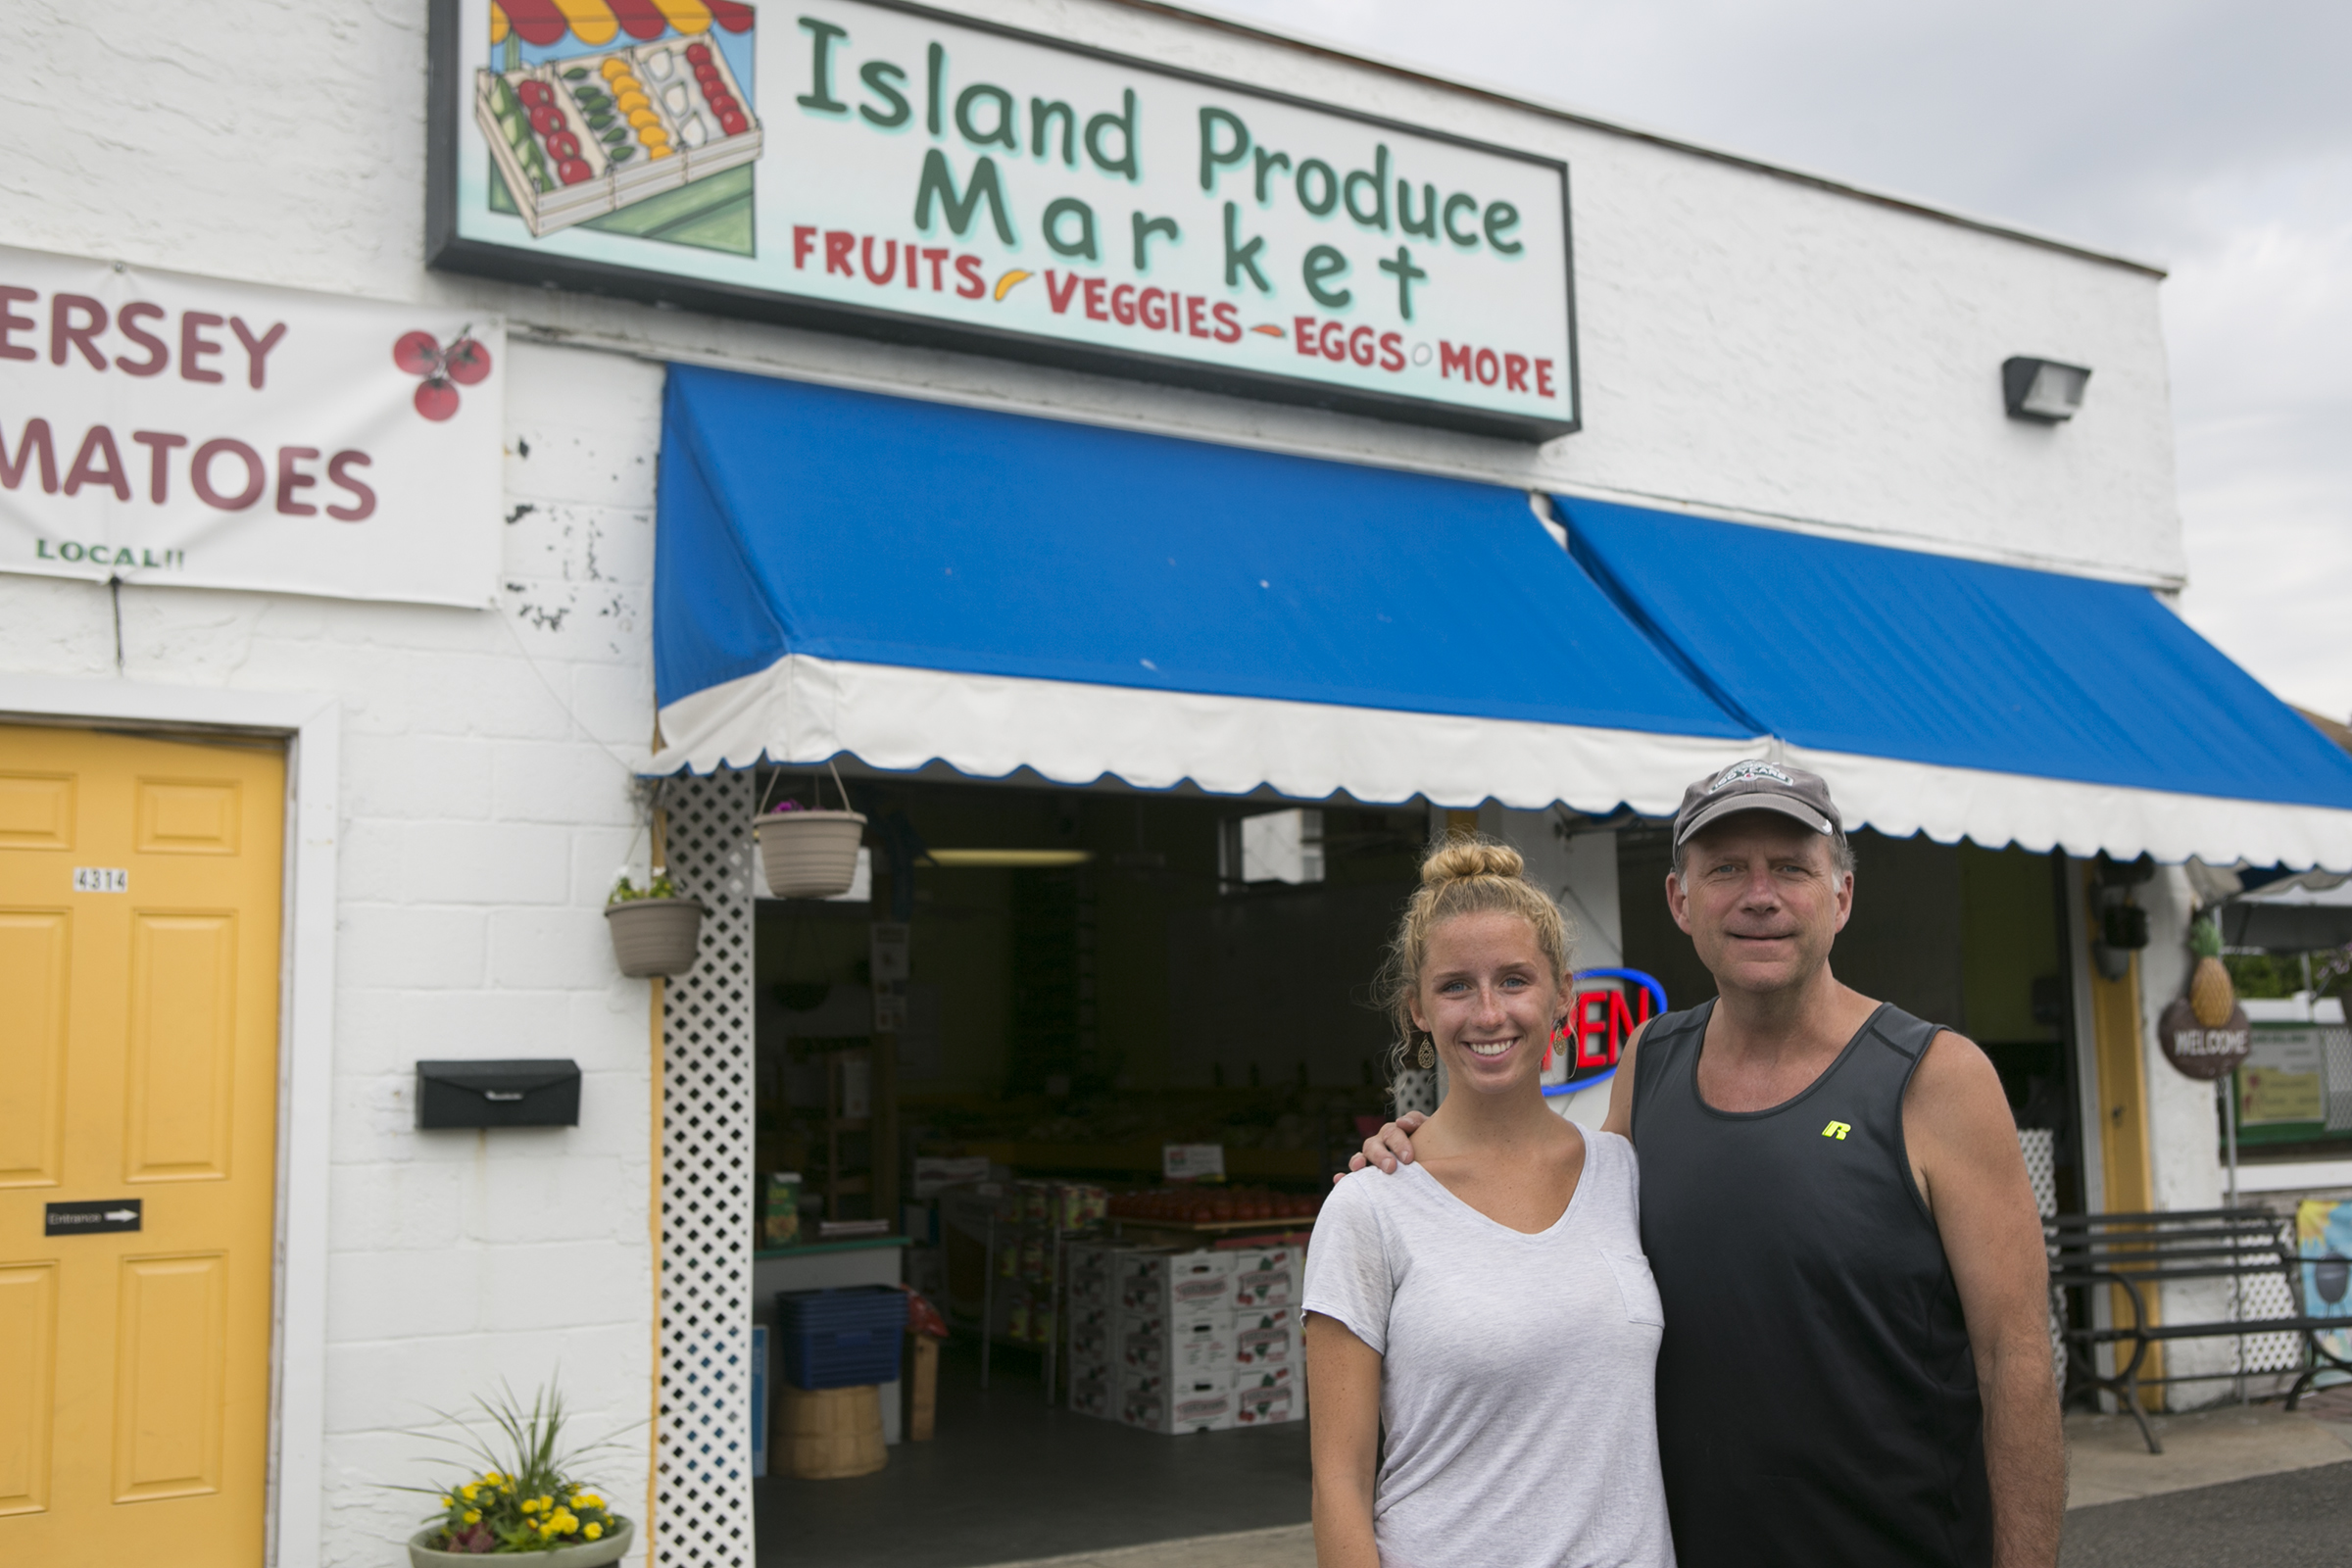 Owner Dave Mayer and his daughter Katie, 19, stand outside their business, Island Produce Market, in Wildwood, N.J., on the morning of Thursday, July 12, 2018. MAGGIE LOESCH / Staff Photographer